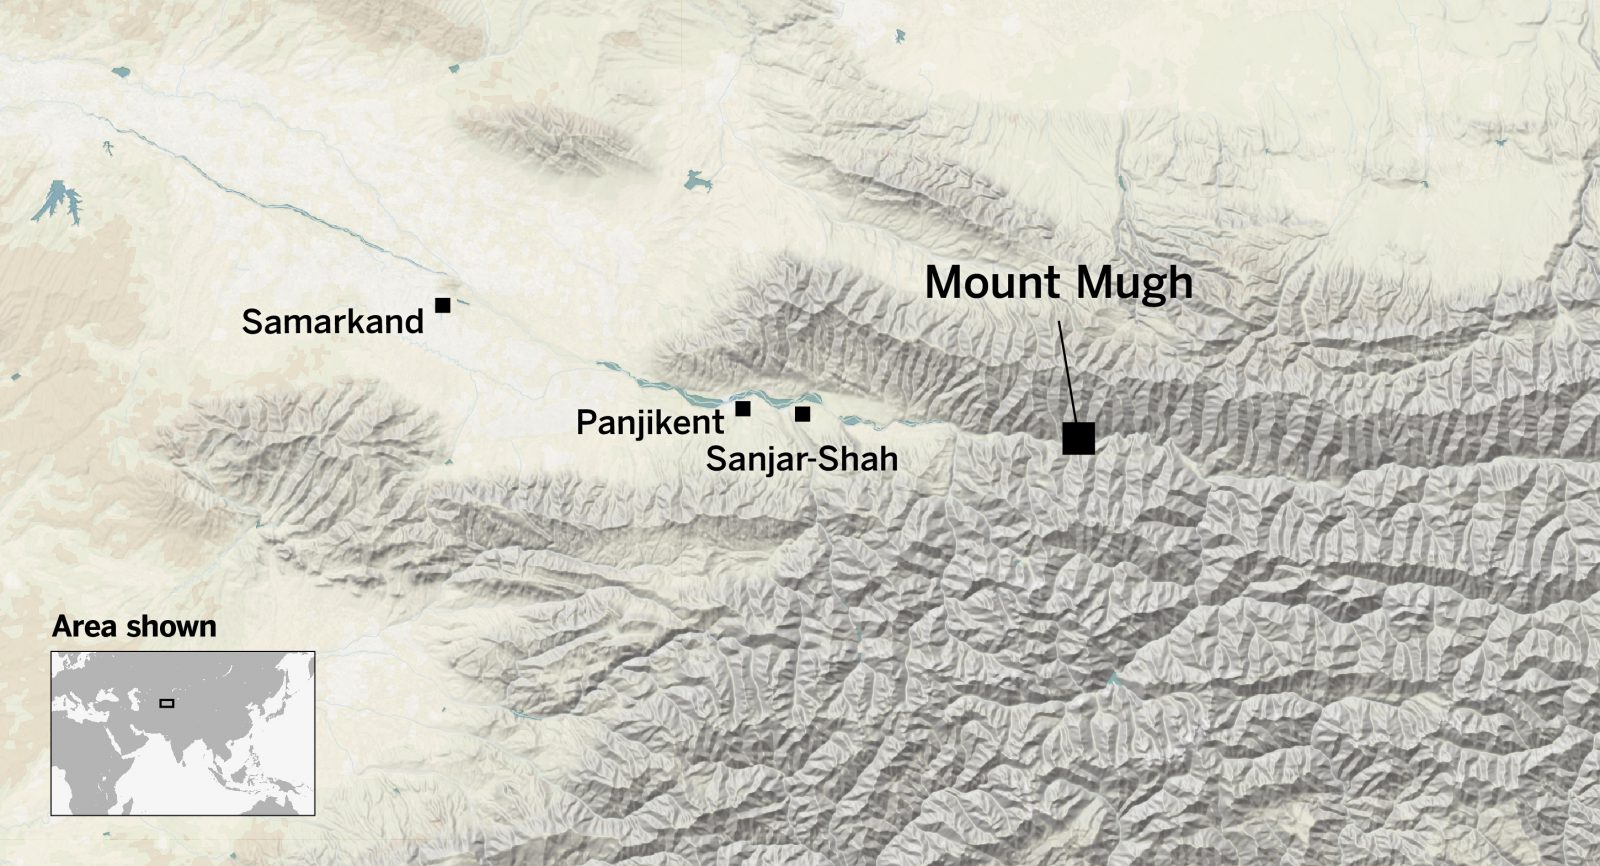 Mount Mugh is east of Samarkand and Panjikent